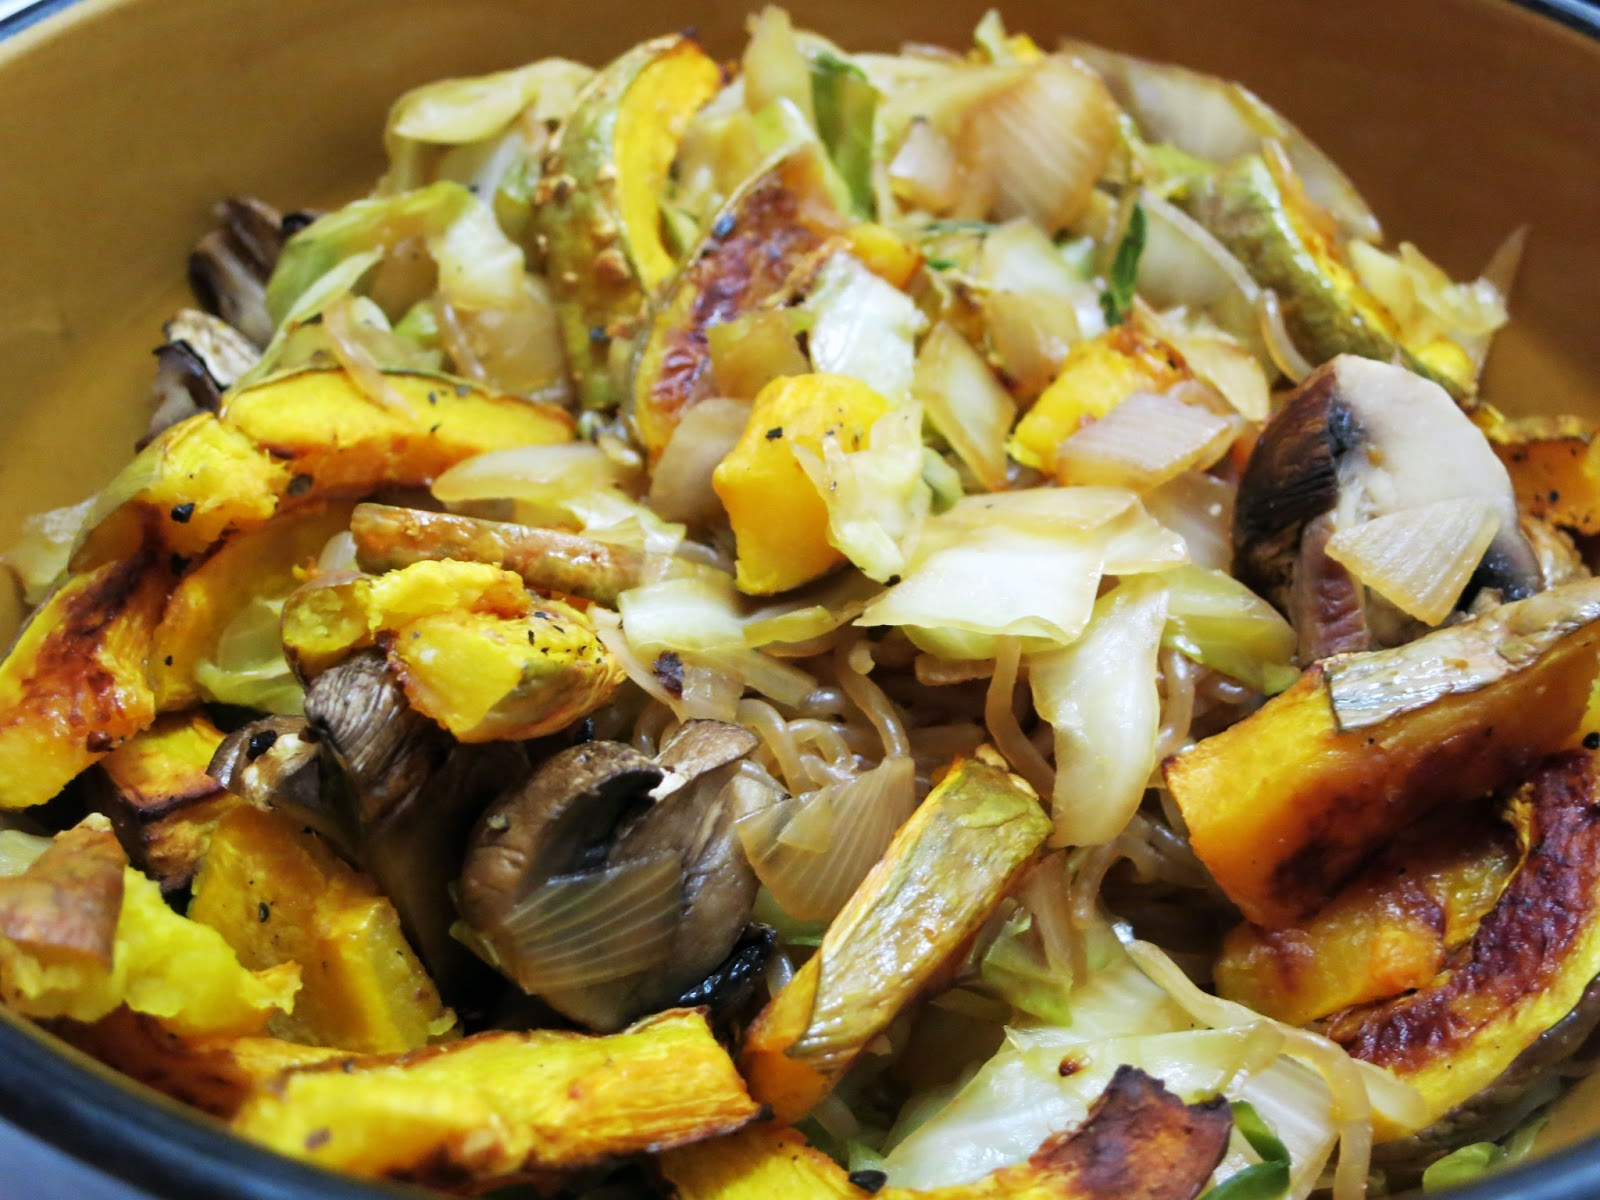 Roasted Kabocha, Mushroom, Cabbage and Yam Noodle Stir Fry Salad